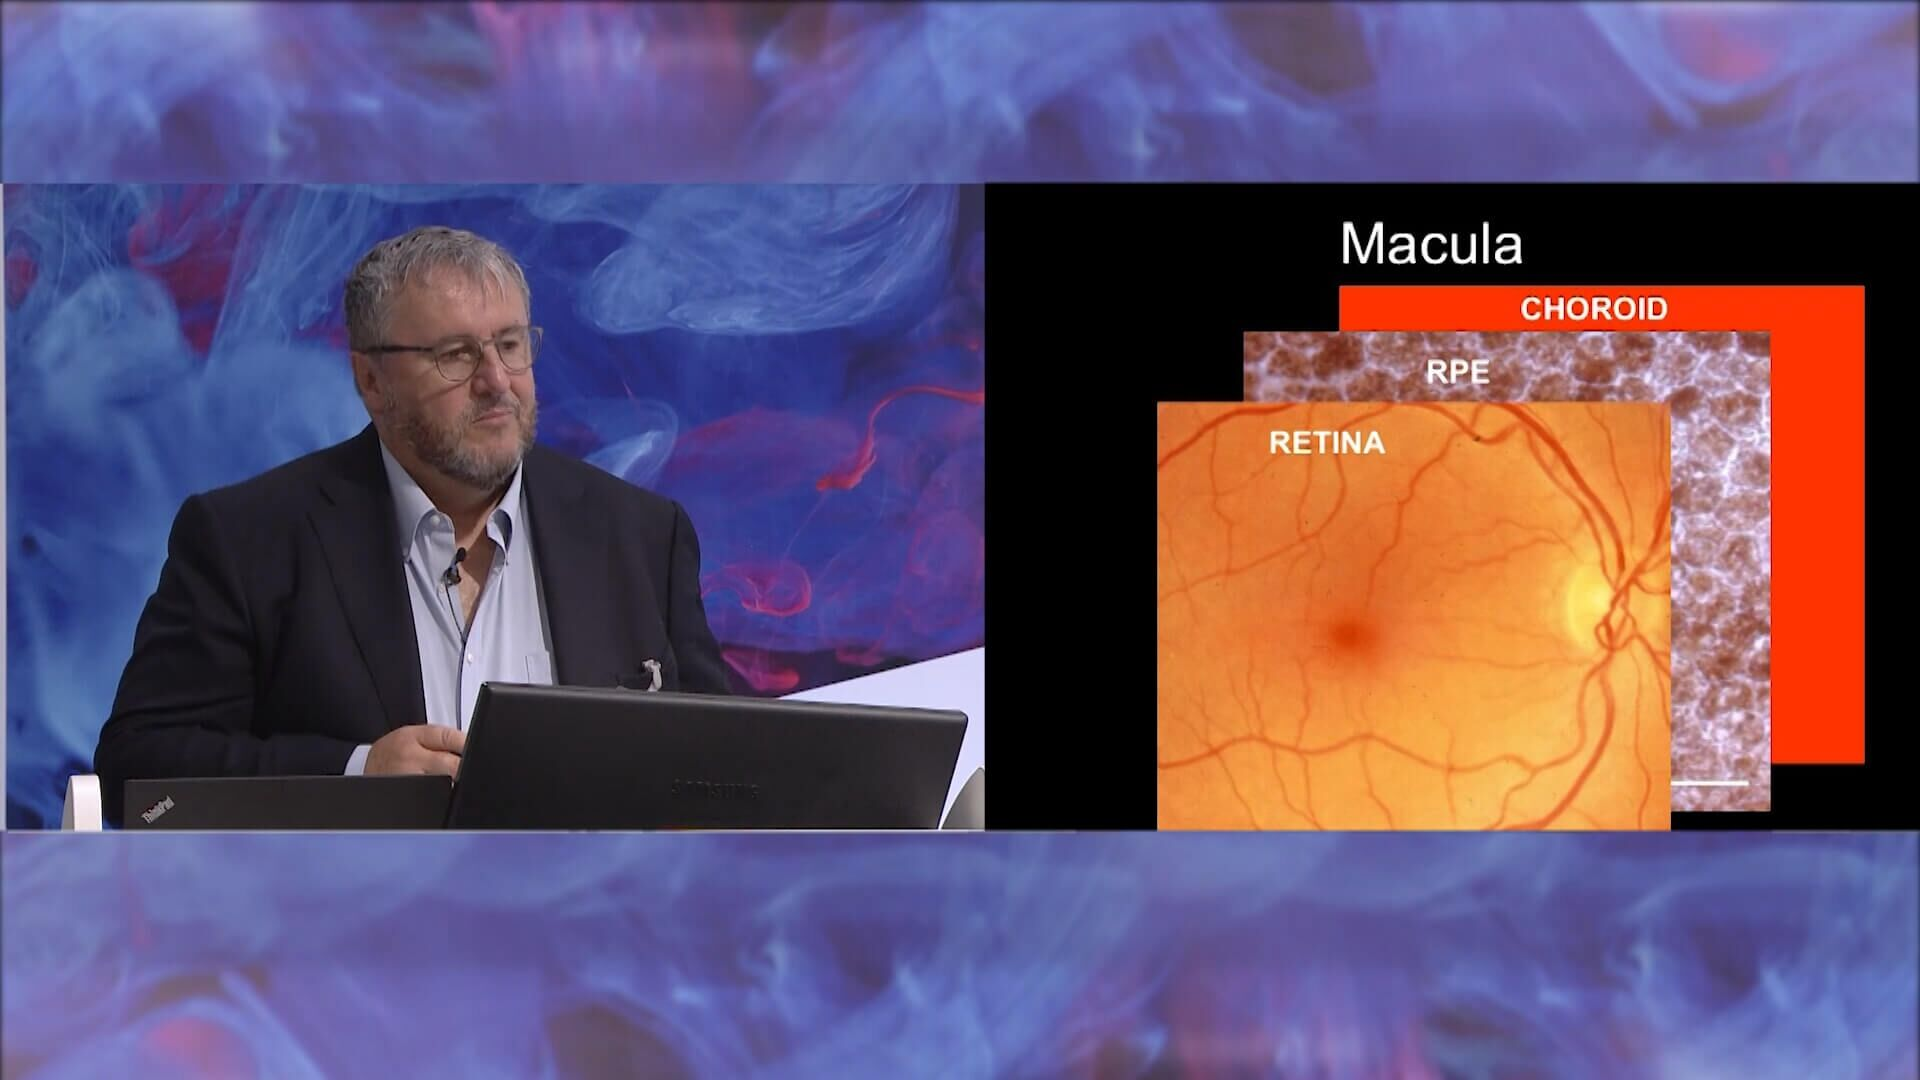 Nature Research Round Table: Retinal Cell Therapy Using Human Embryonic Stem Cells